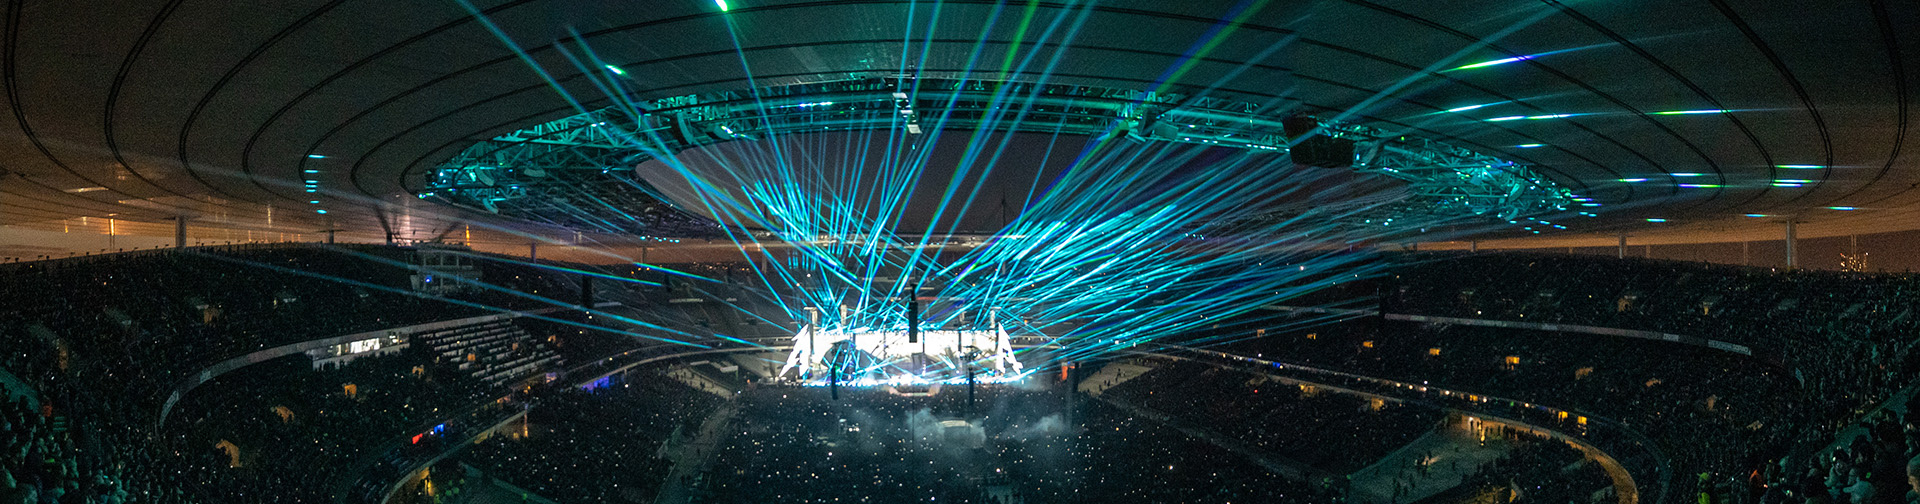 Metallica at Stade de France in Paris, France on May 12, 2019